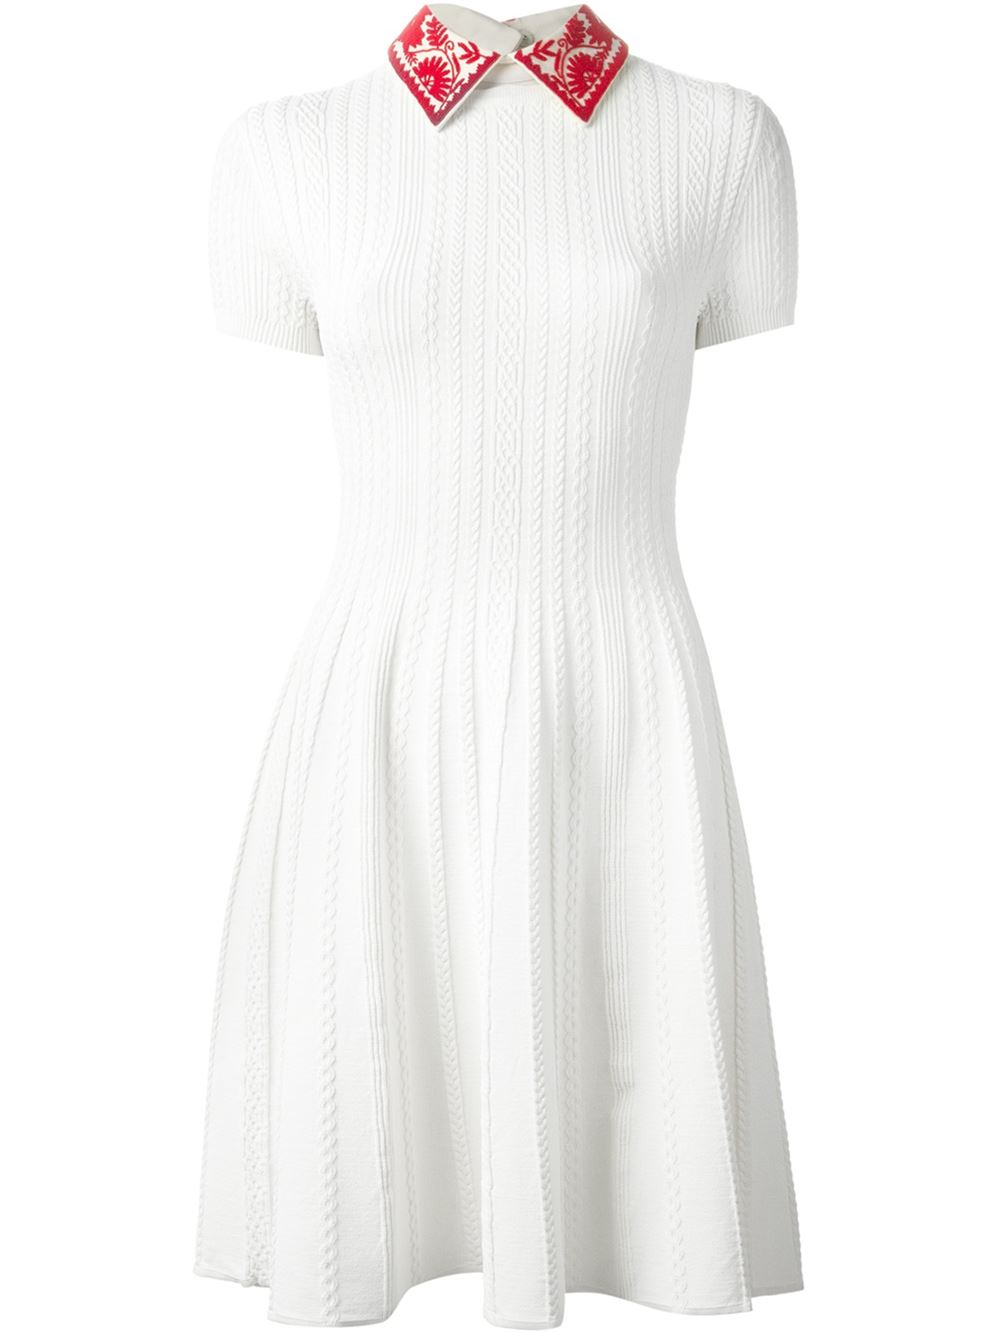 Valentino Woman Embellished Crepe-trimmed Cable-knit Dress Ivory Size M Valentino 4sXAq